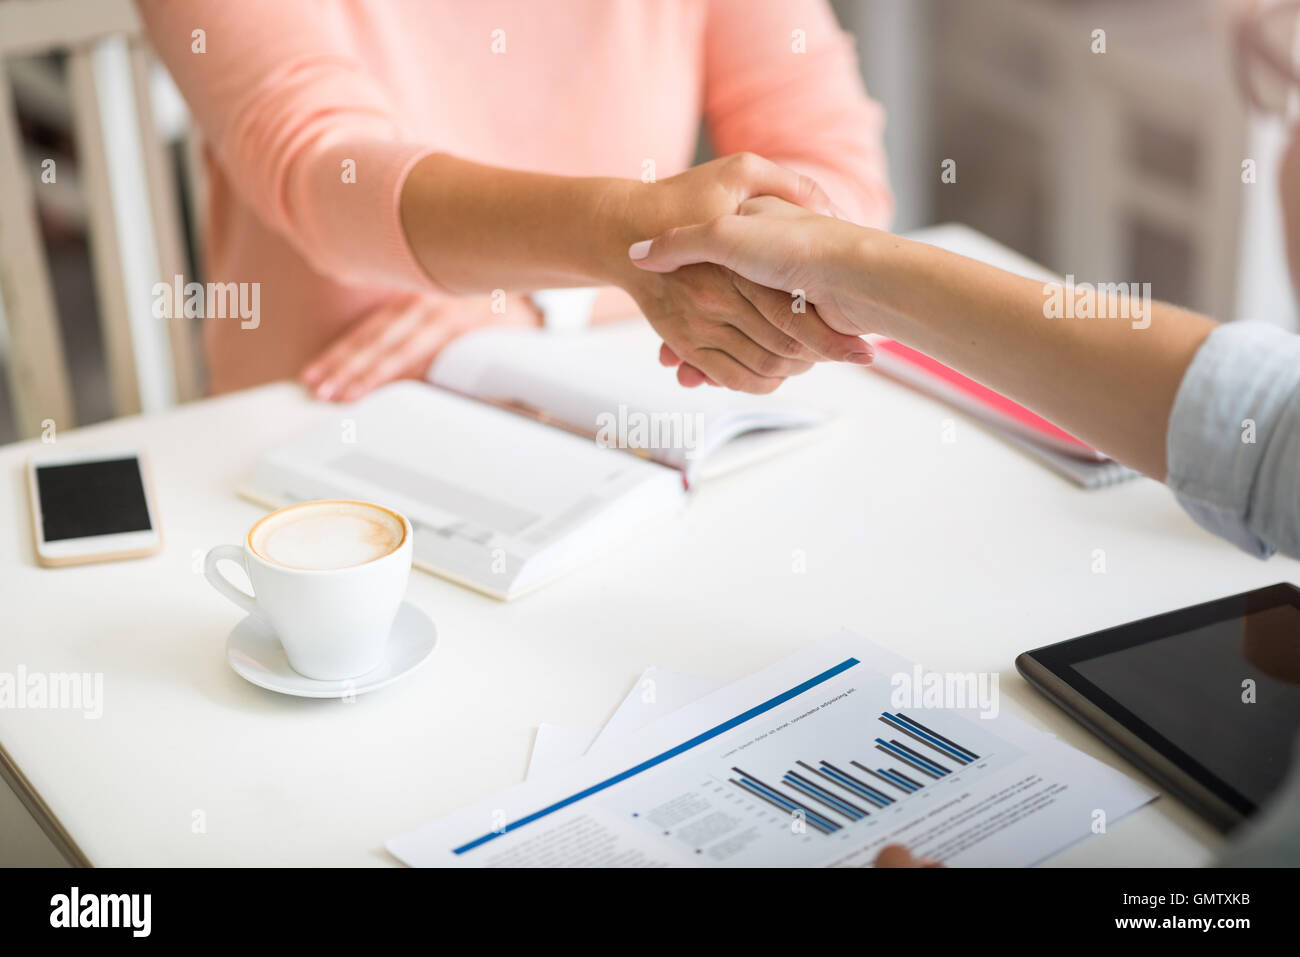 Les femmes agréable shaking hands Photo Stock